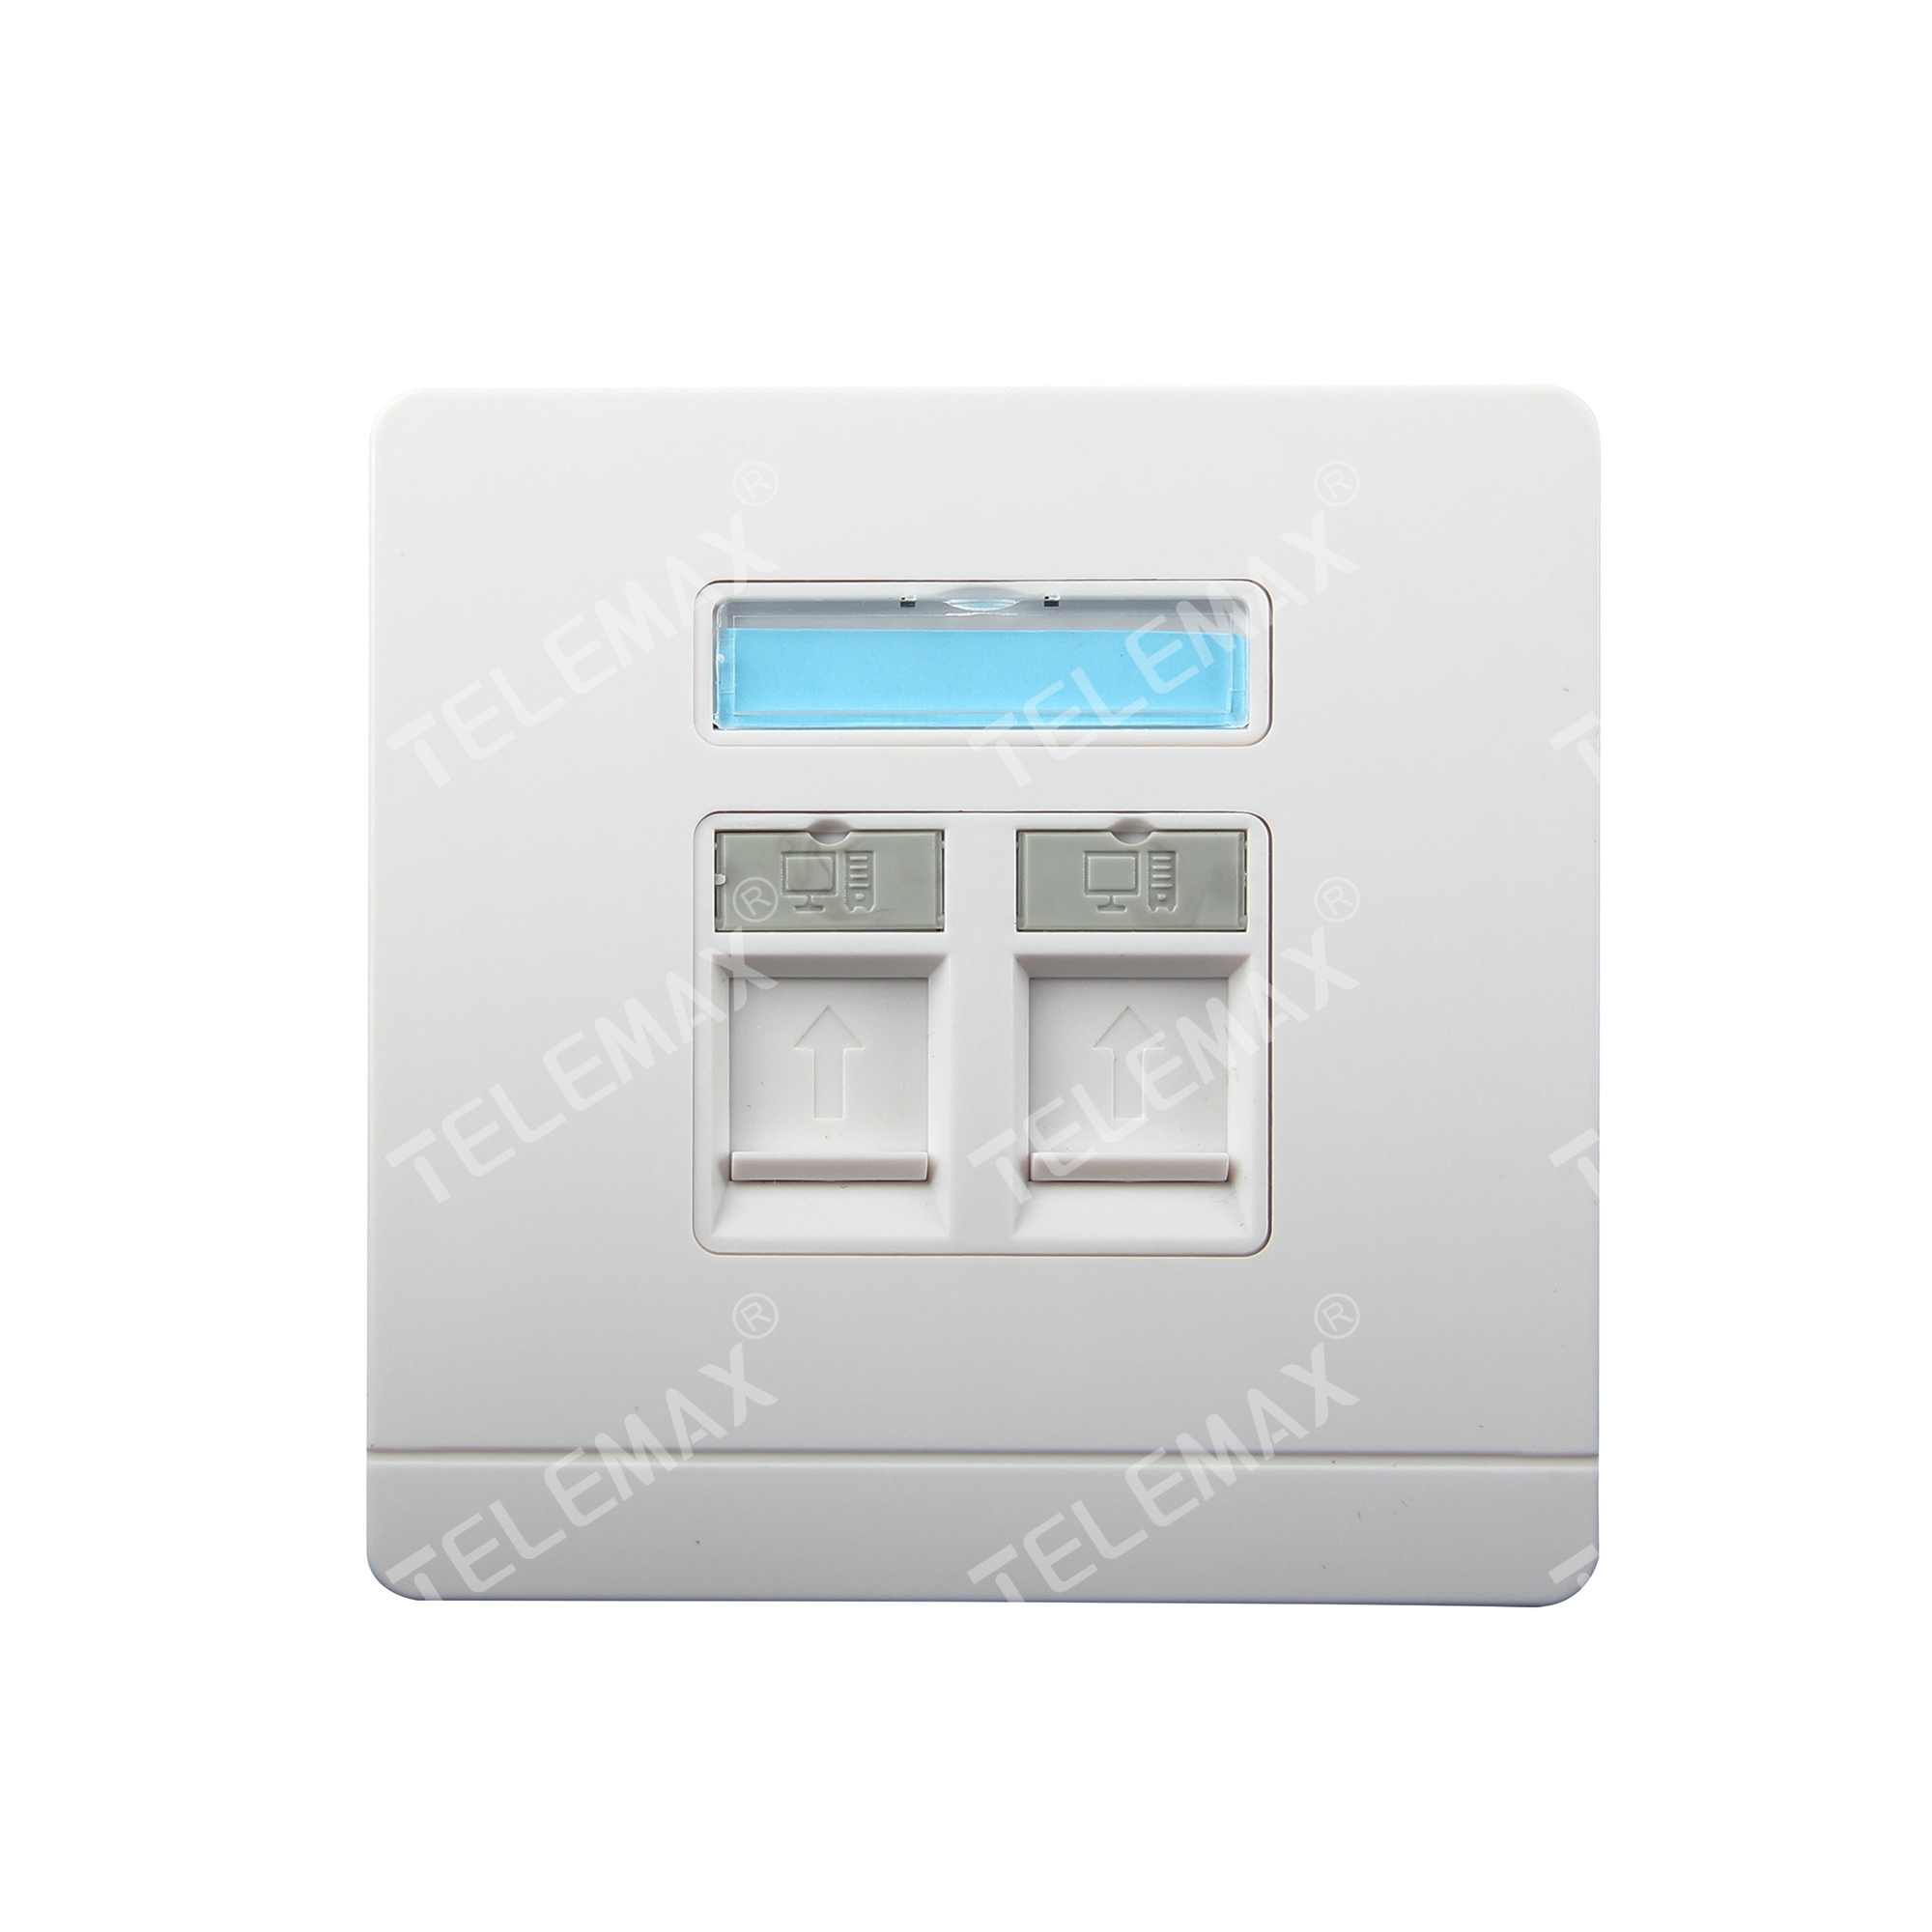 86*86mm Faceplate 2 Ports ABS UL94V-0